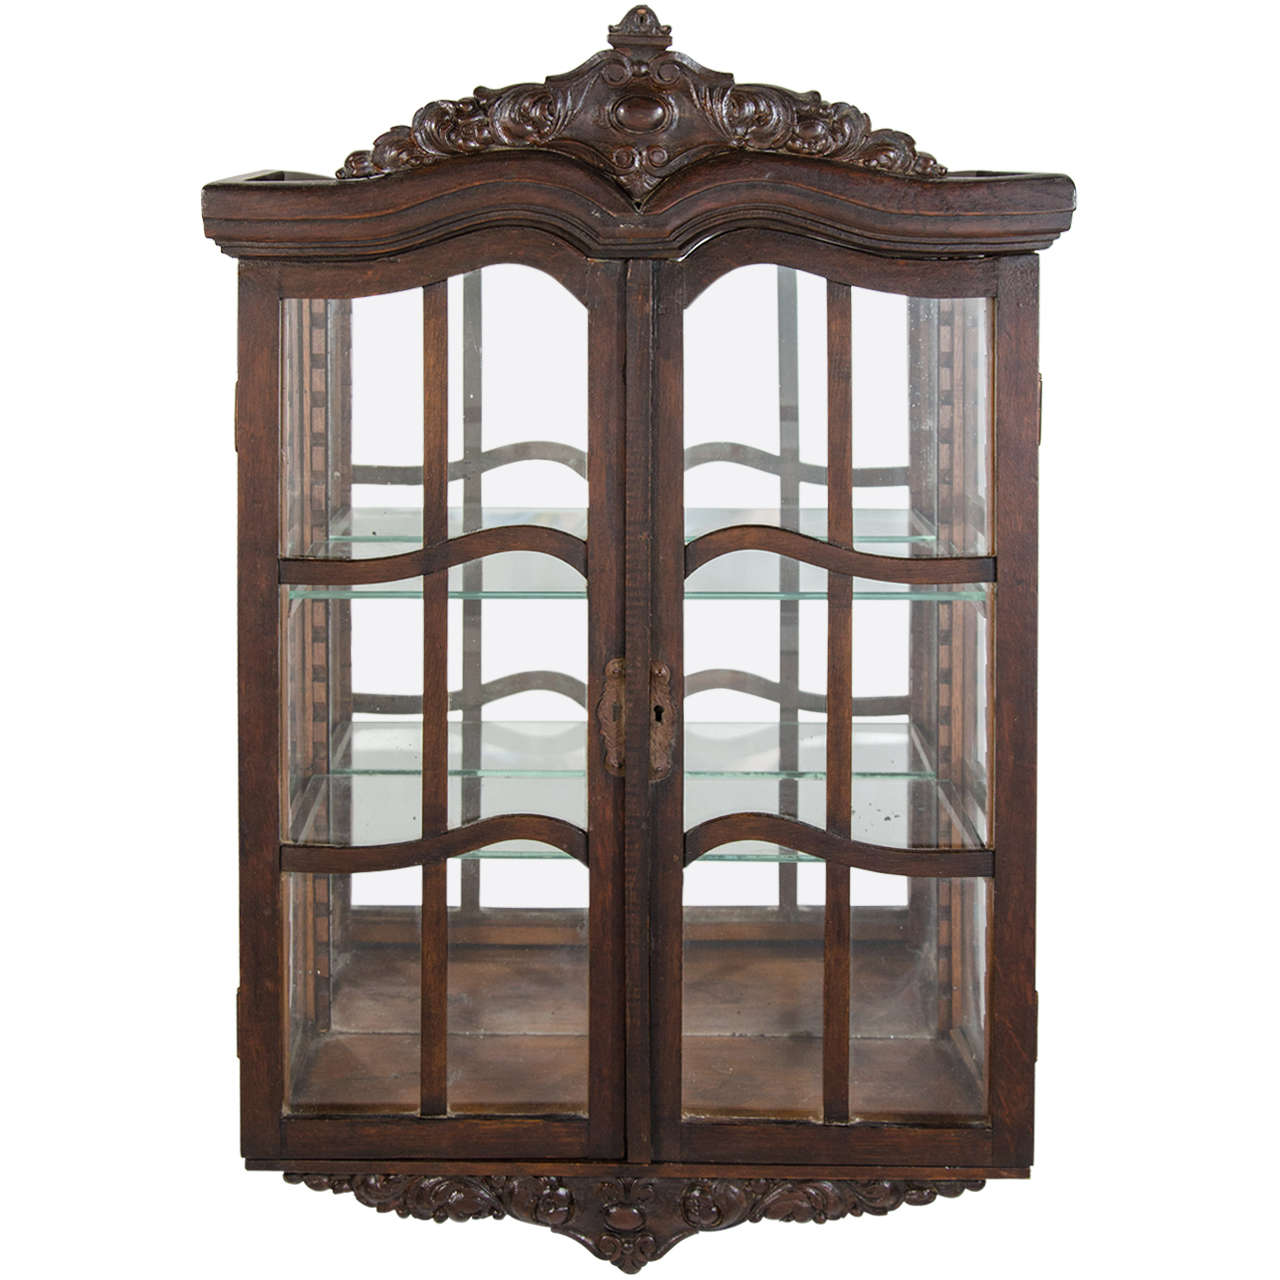 Victorian Antique Curio Cabinet with Hand Carved Wood Designs For Sale